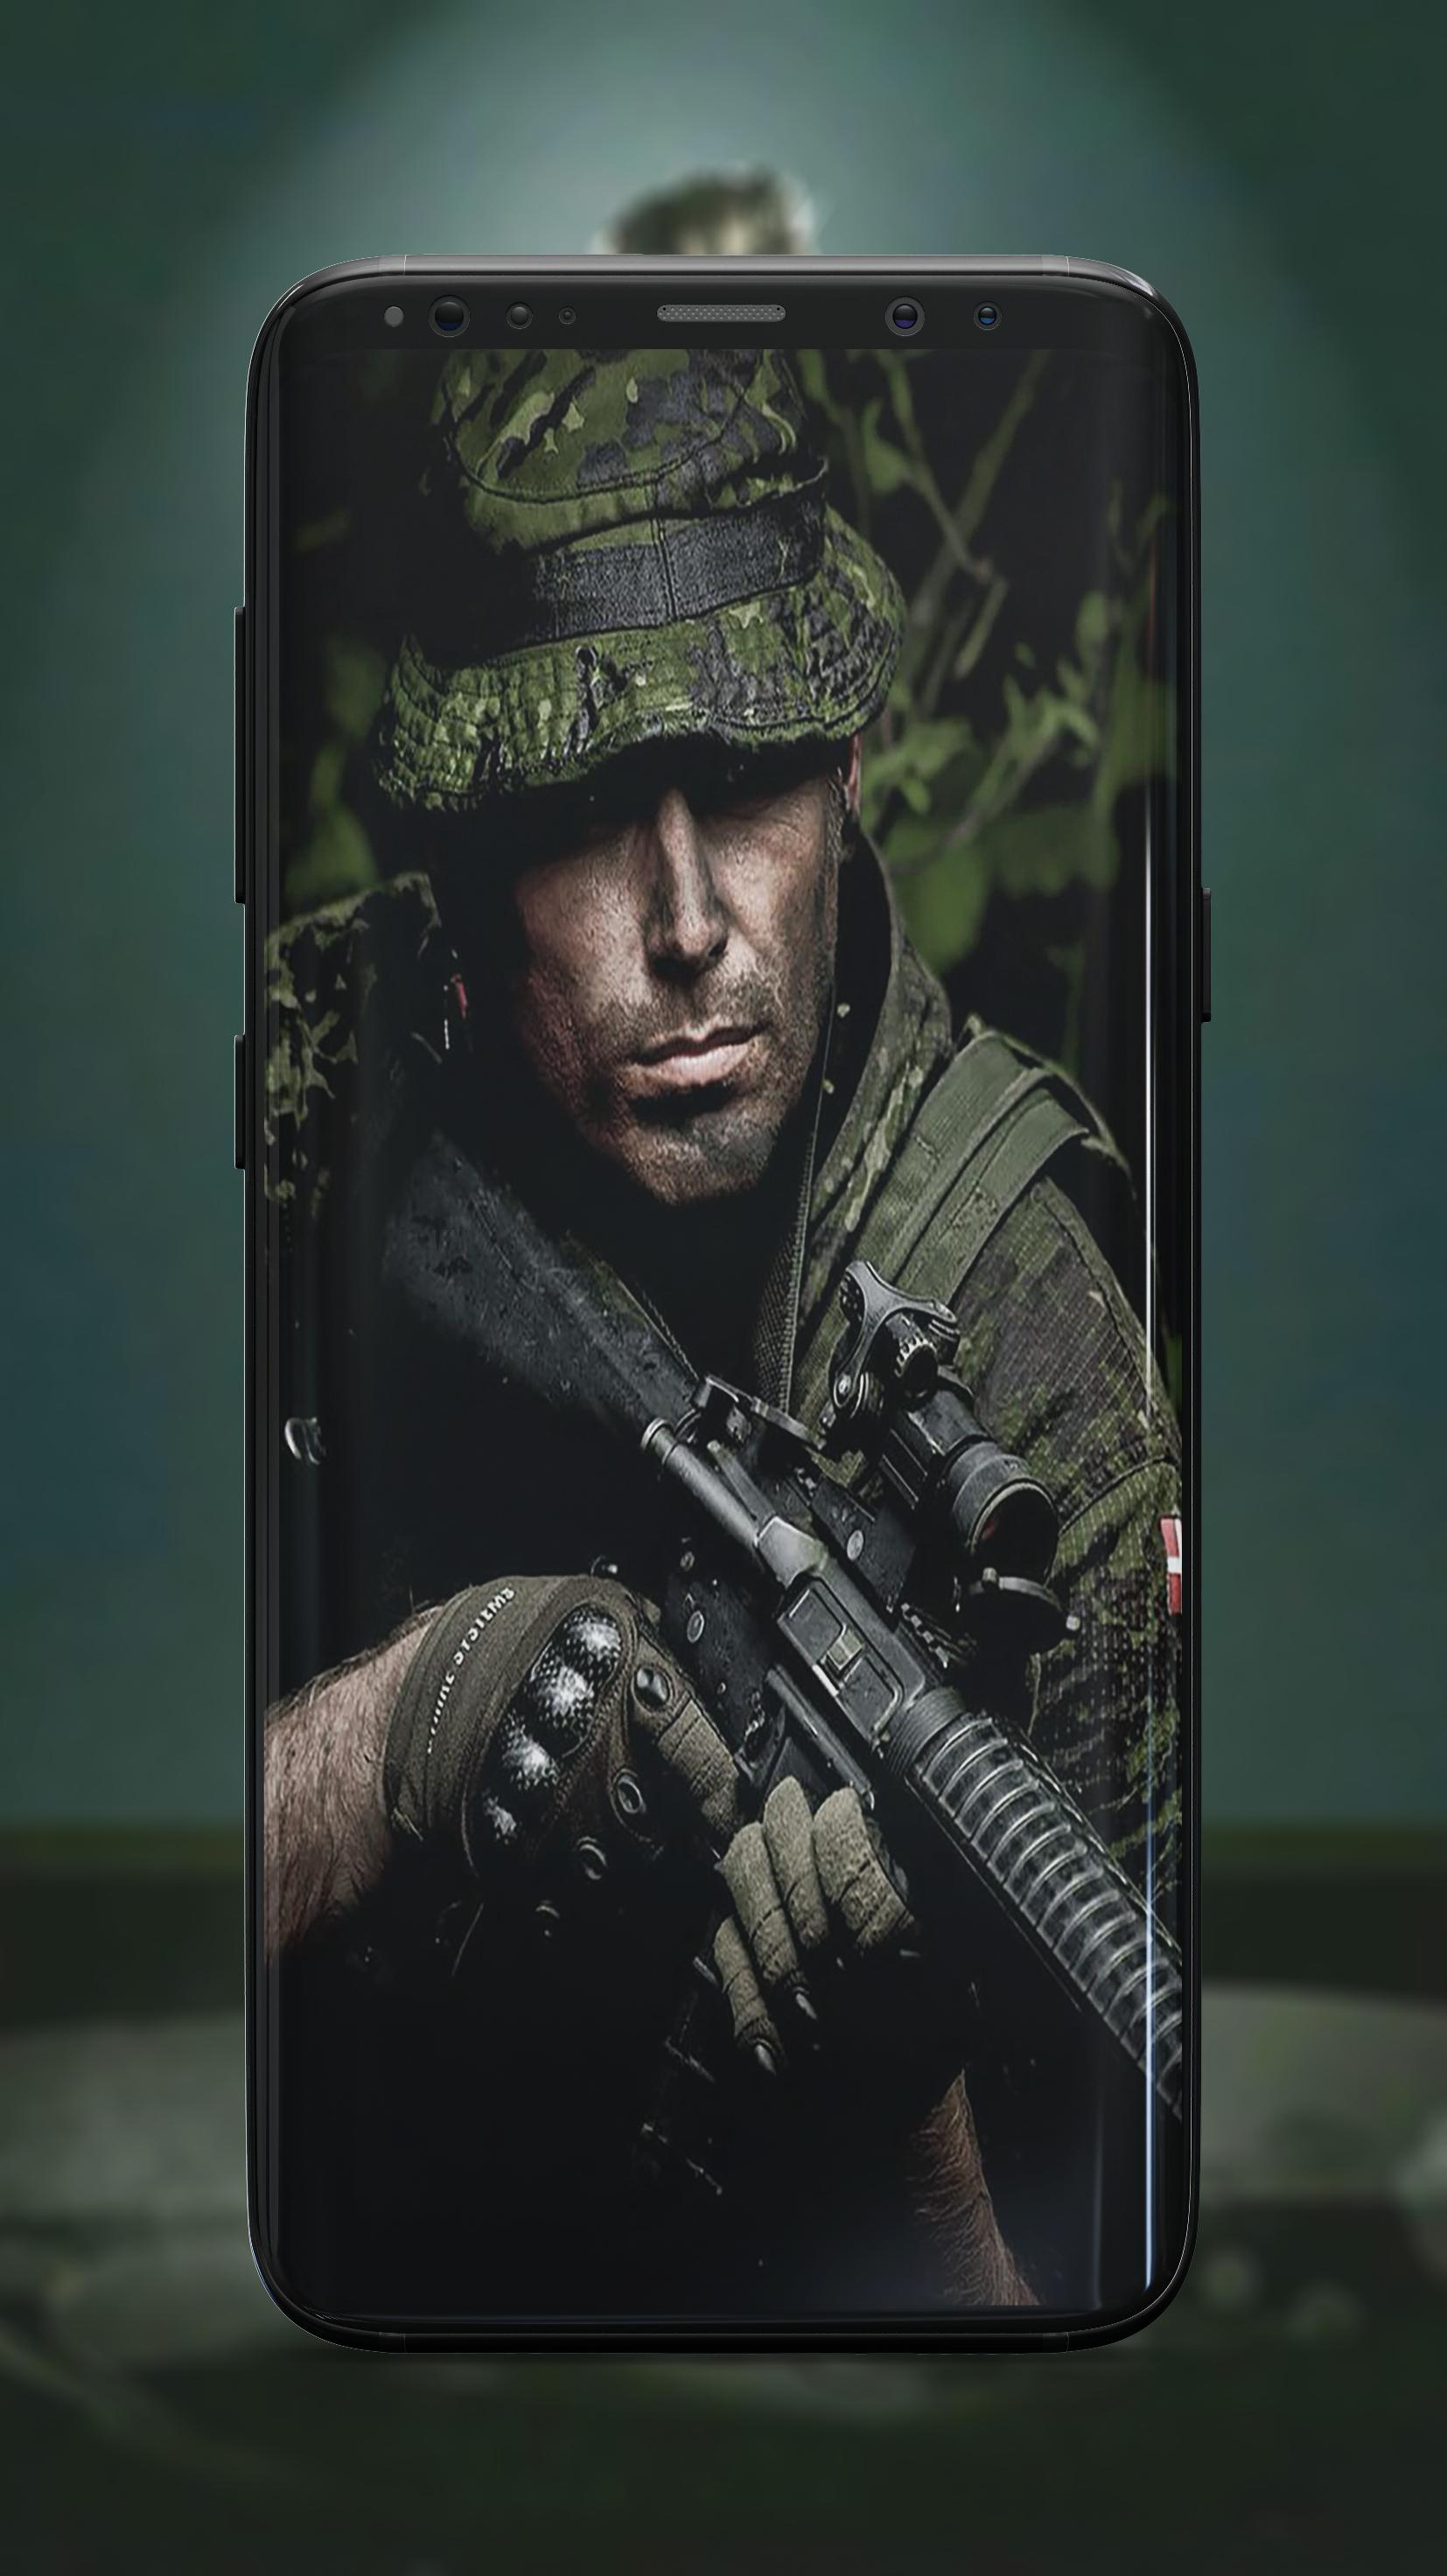 Military Soldier Wallpaper Hd For Android Apk Download